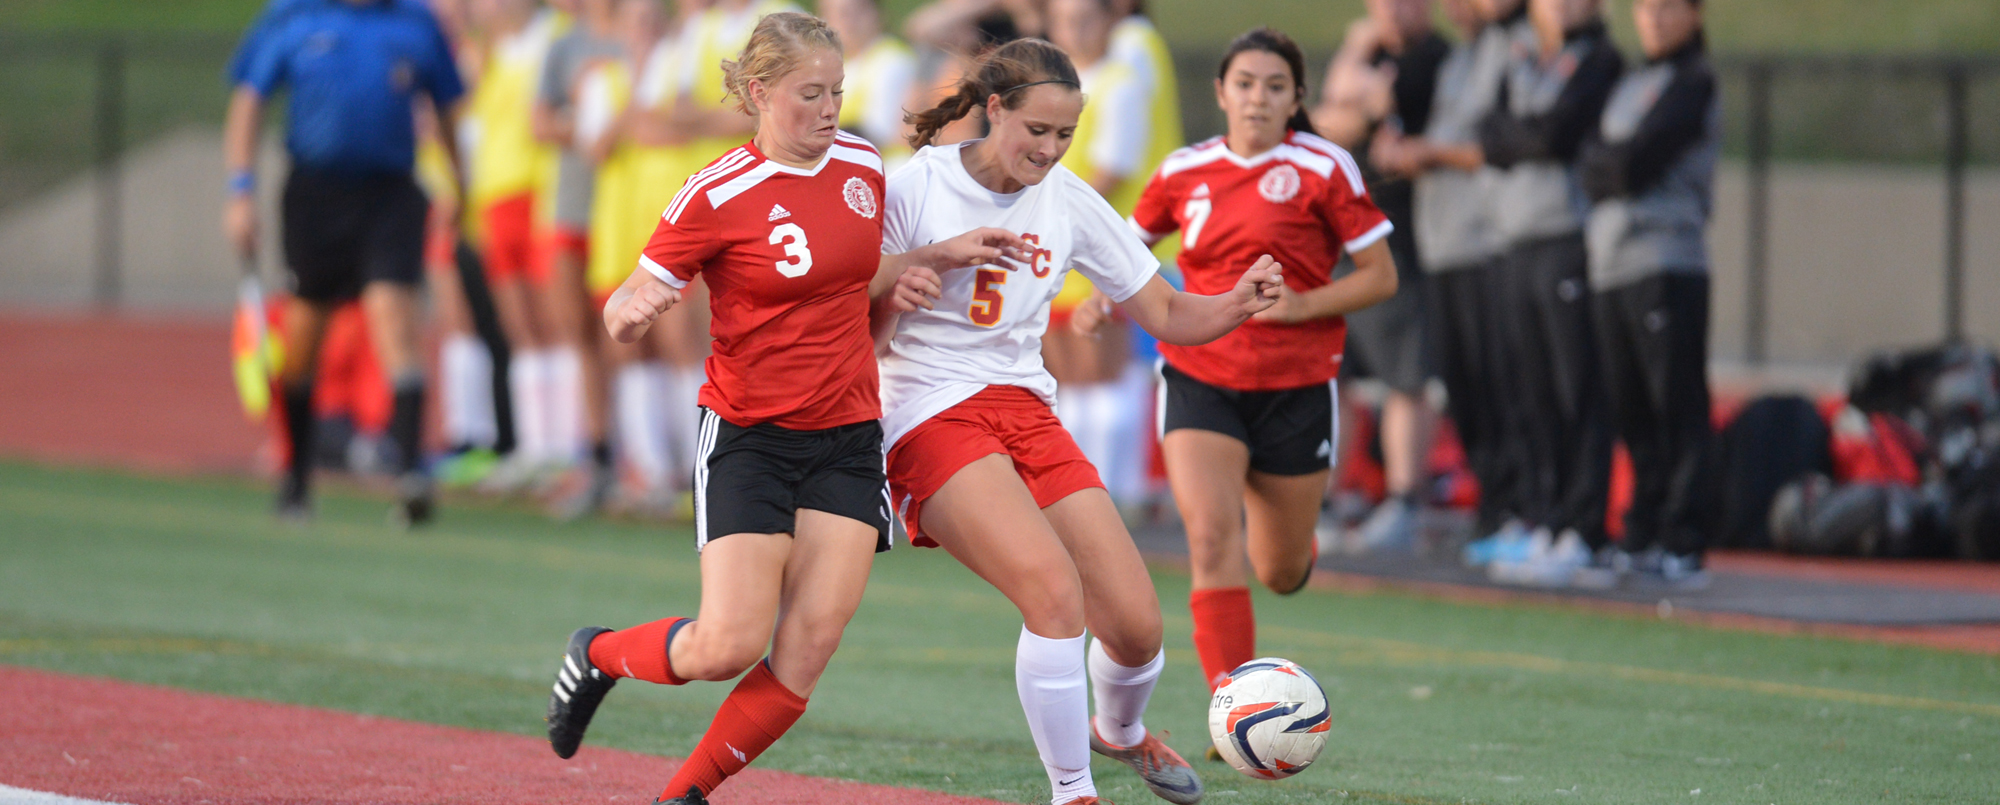 First half goals haunt Storm in loss to Grand View